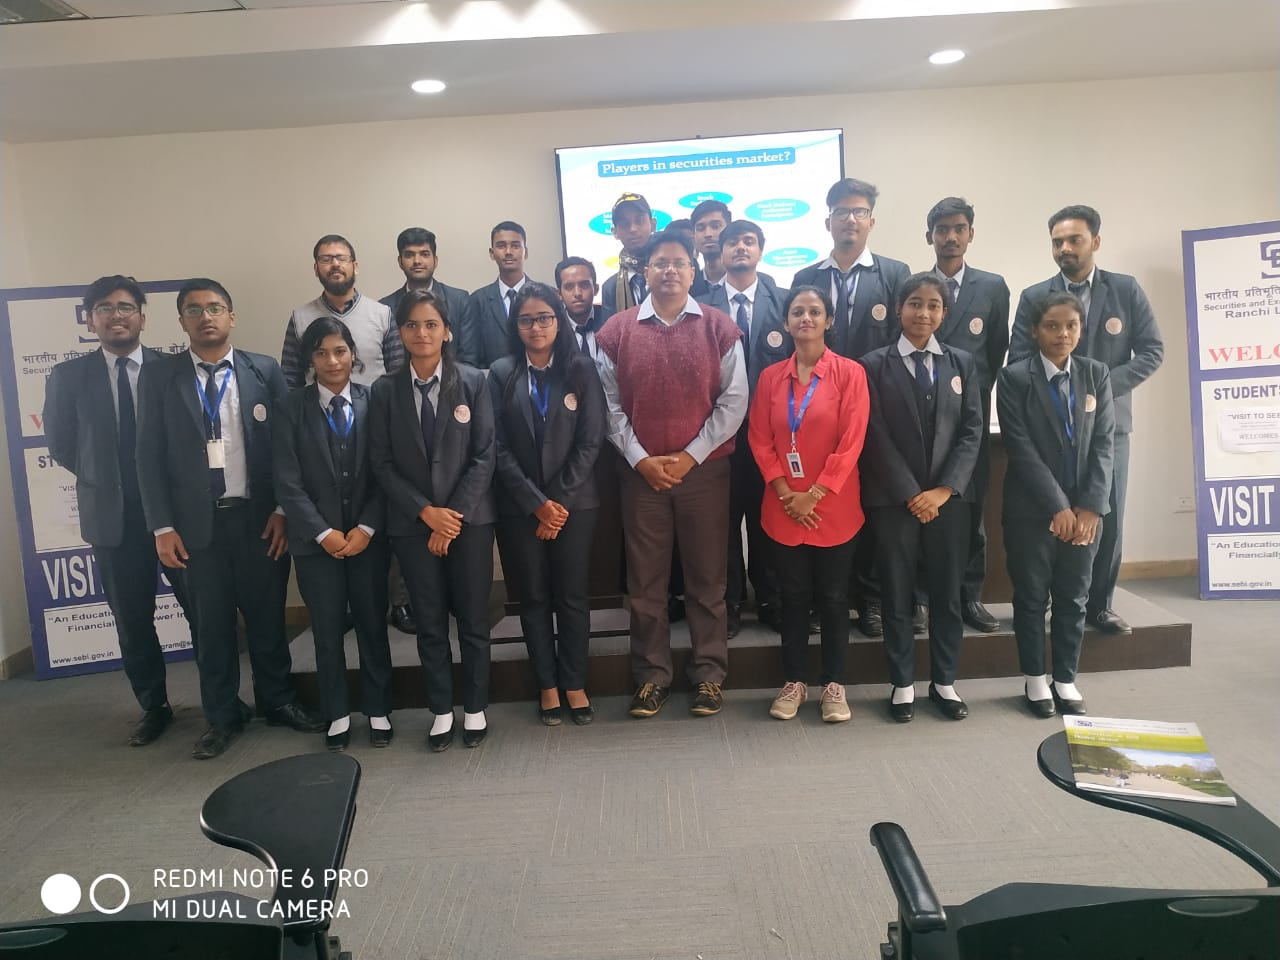 SBU Organized Industrial Visit to Securities and Exchange Board of India (SEBI) - 16th December, 2019